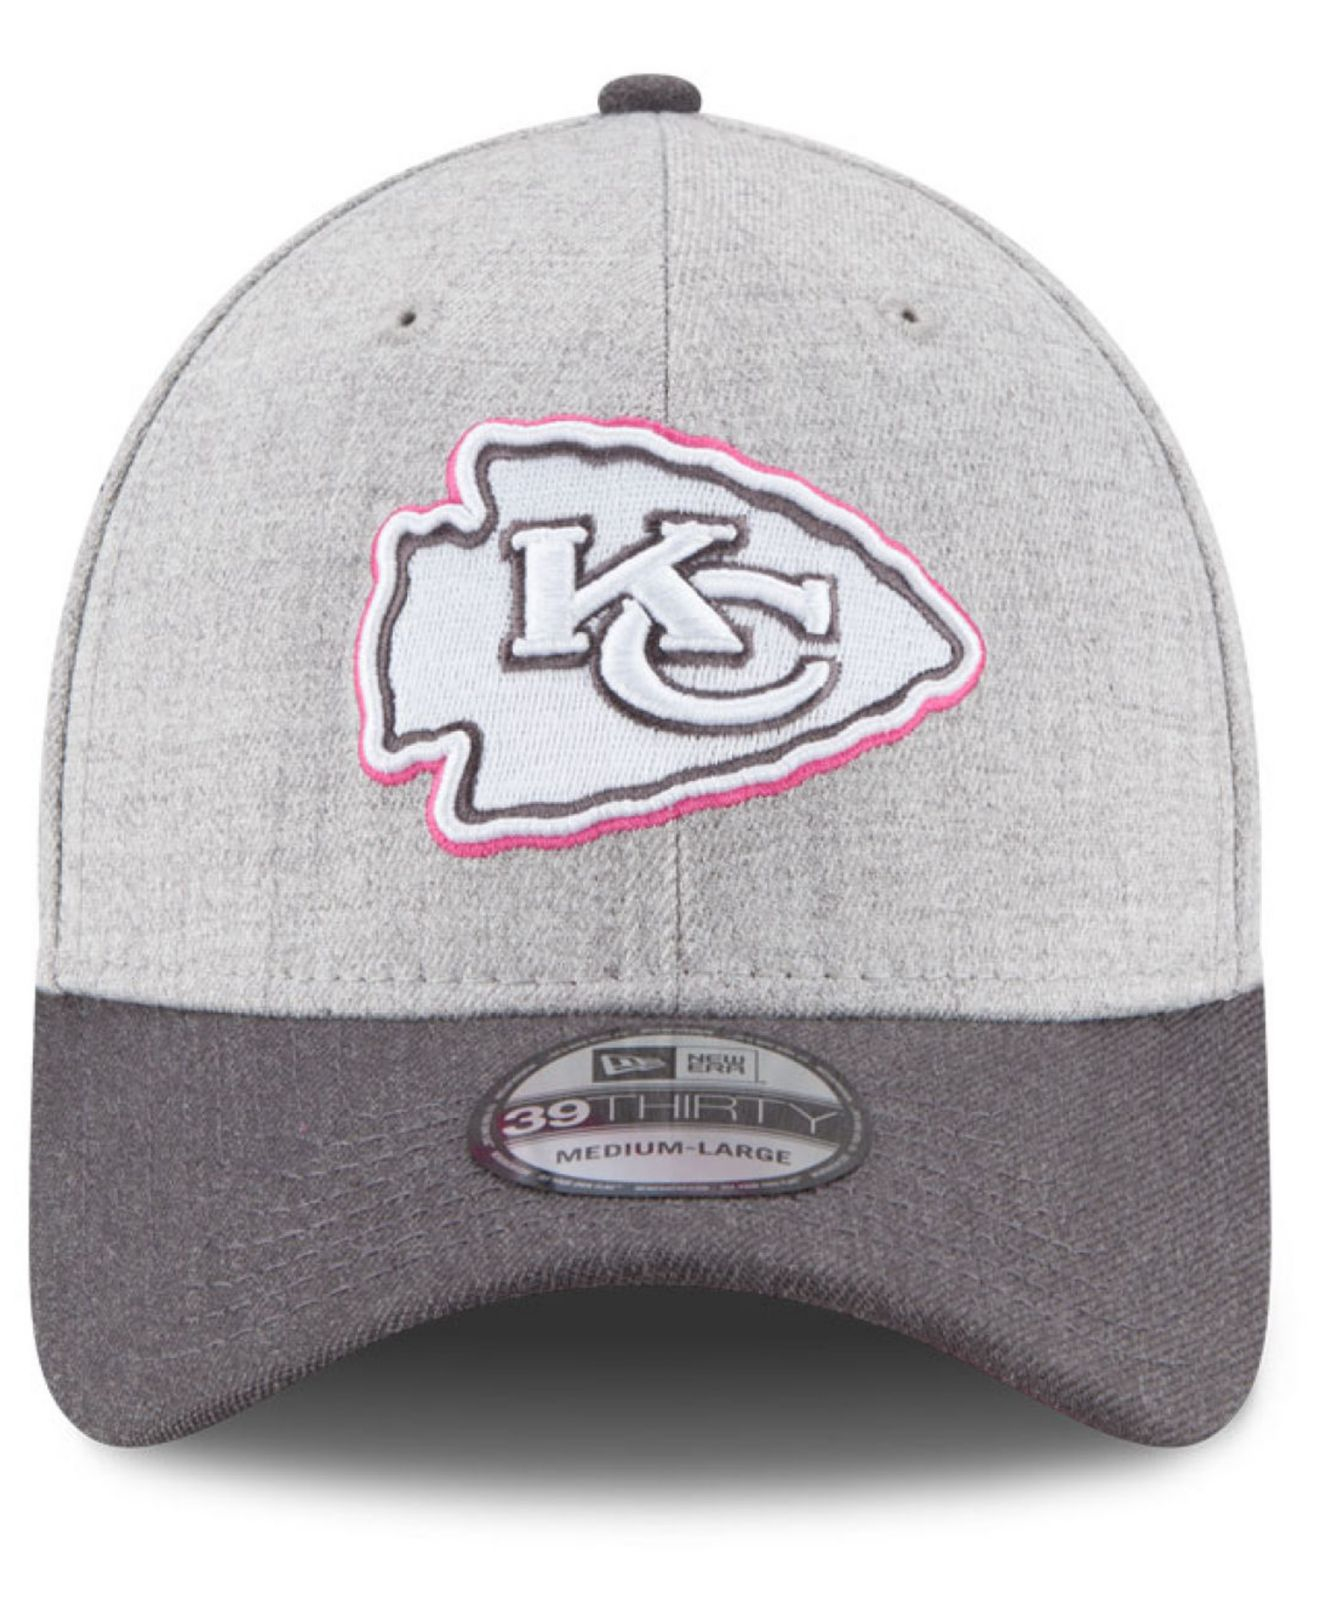 ... Lyst - Ktz Kansas City Chiefs Breast Cancer Awareness 39thir newest  f0722 d4abc ... 6024f56bda0e